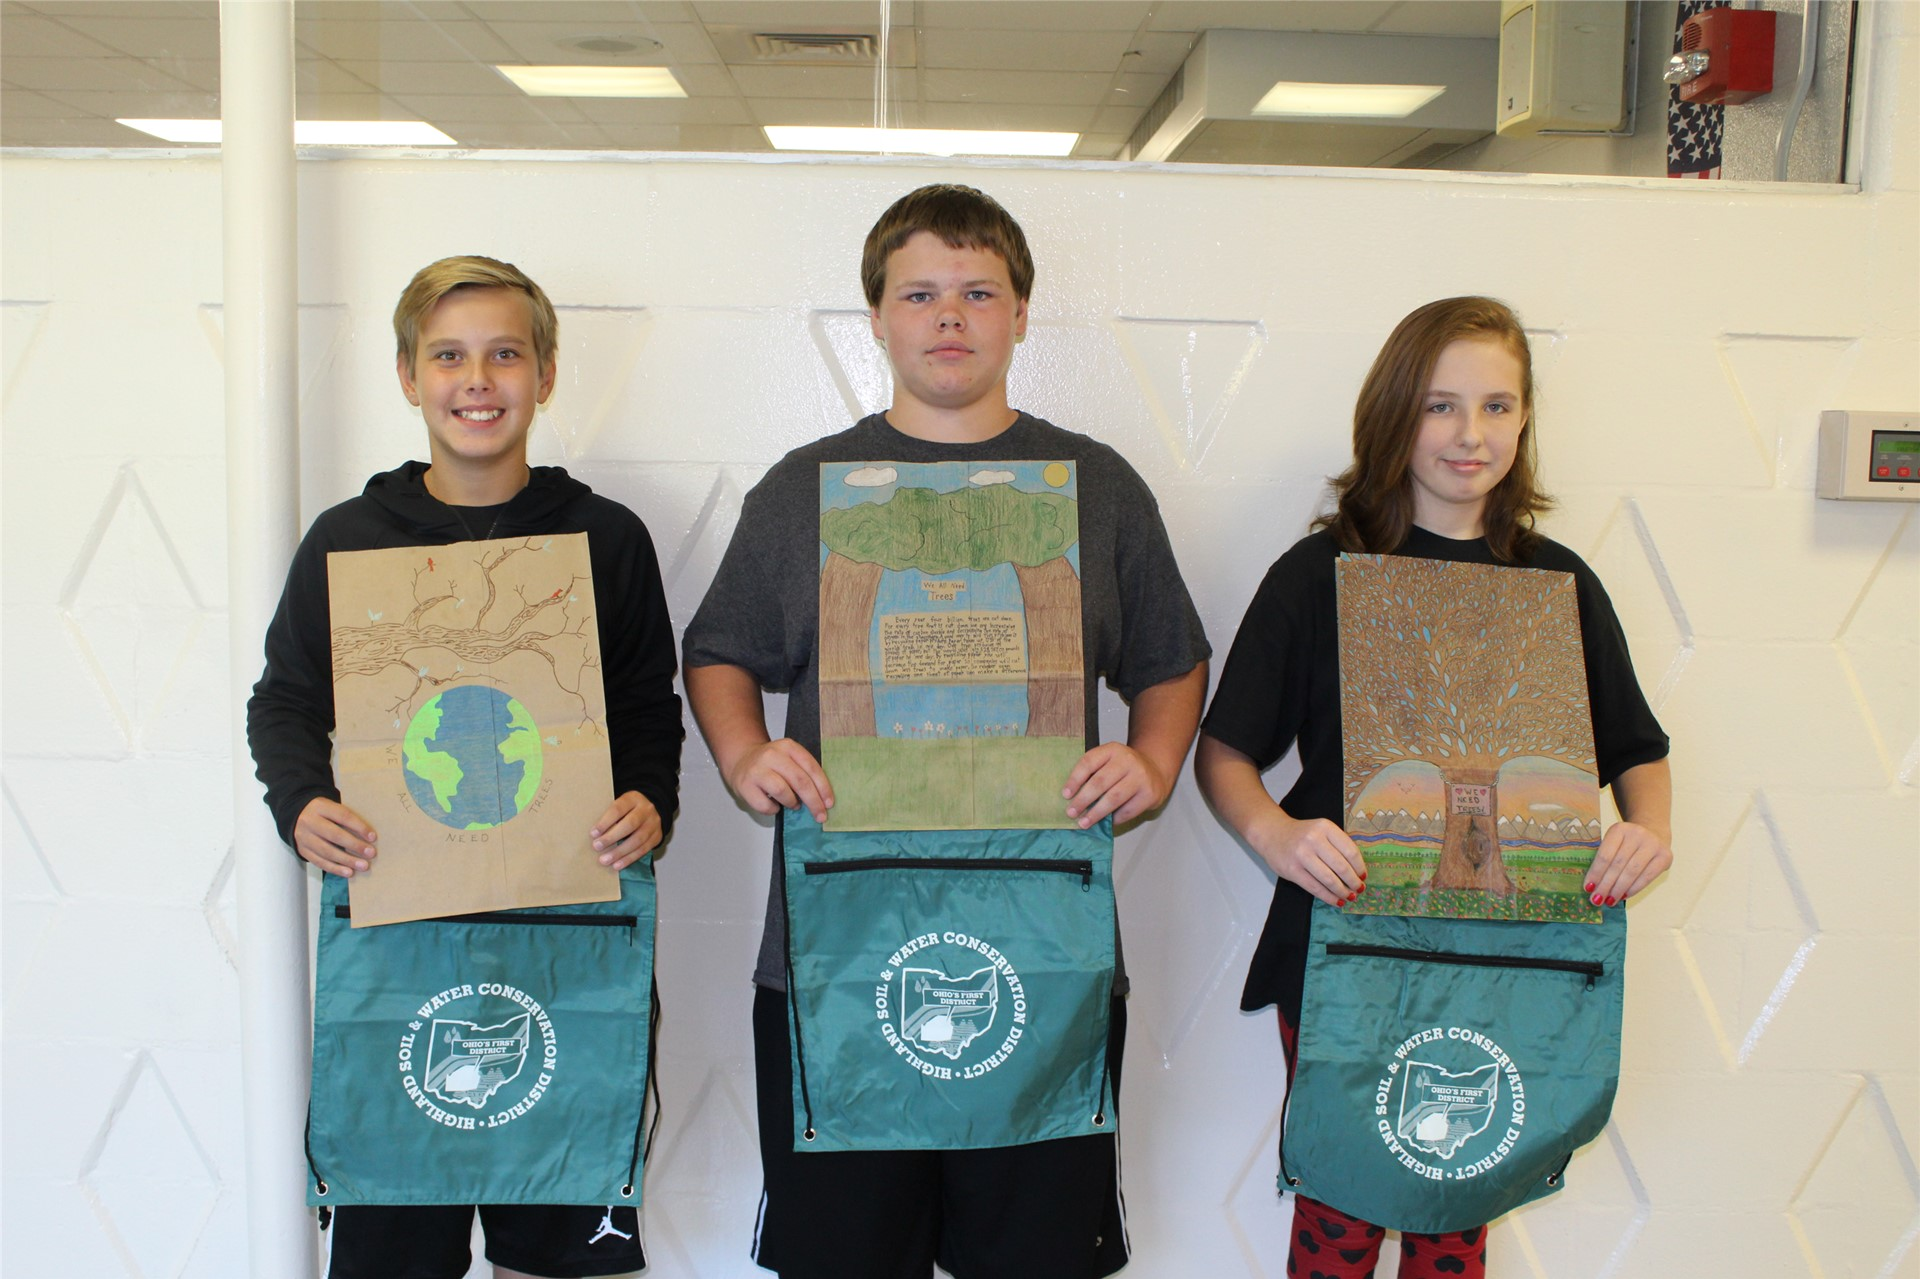 Highland County Soil and Water Conservation District's Poster Winners